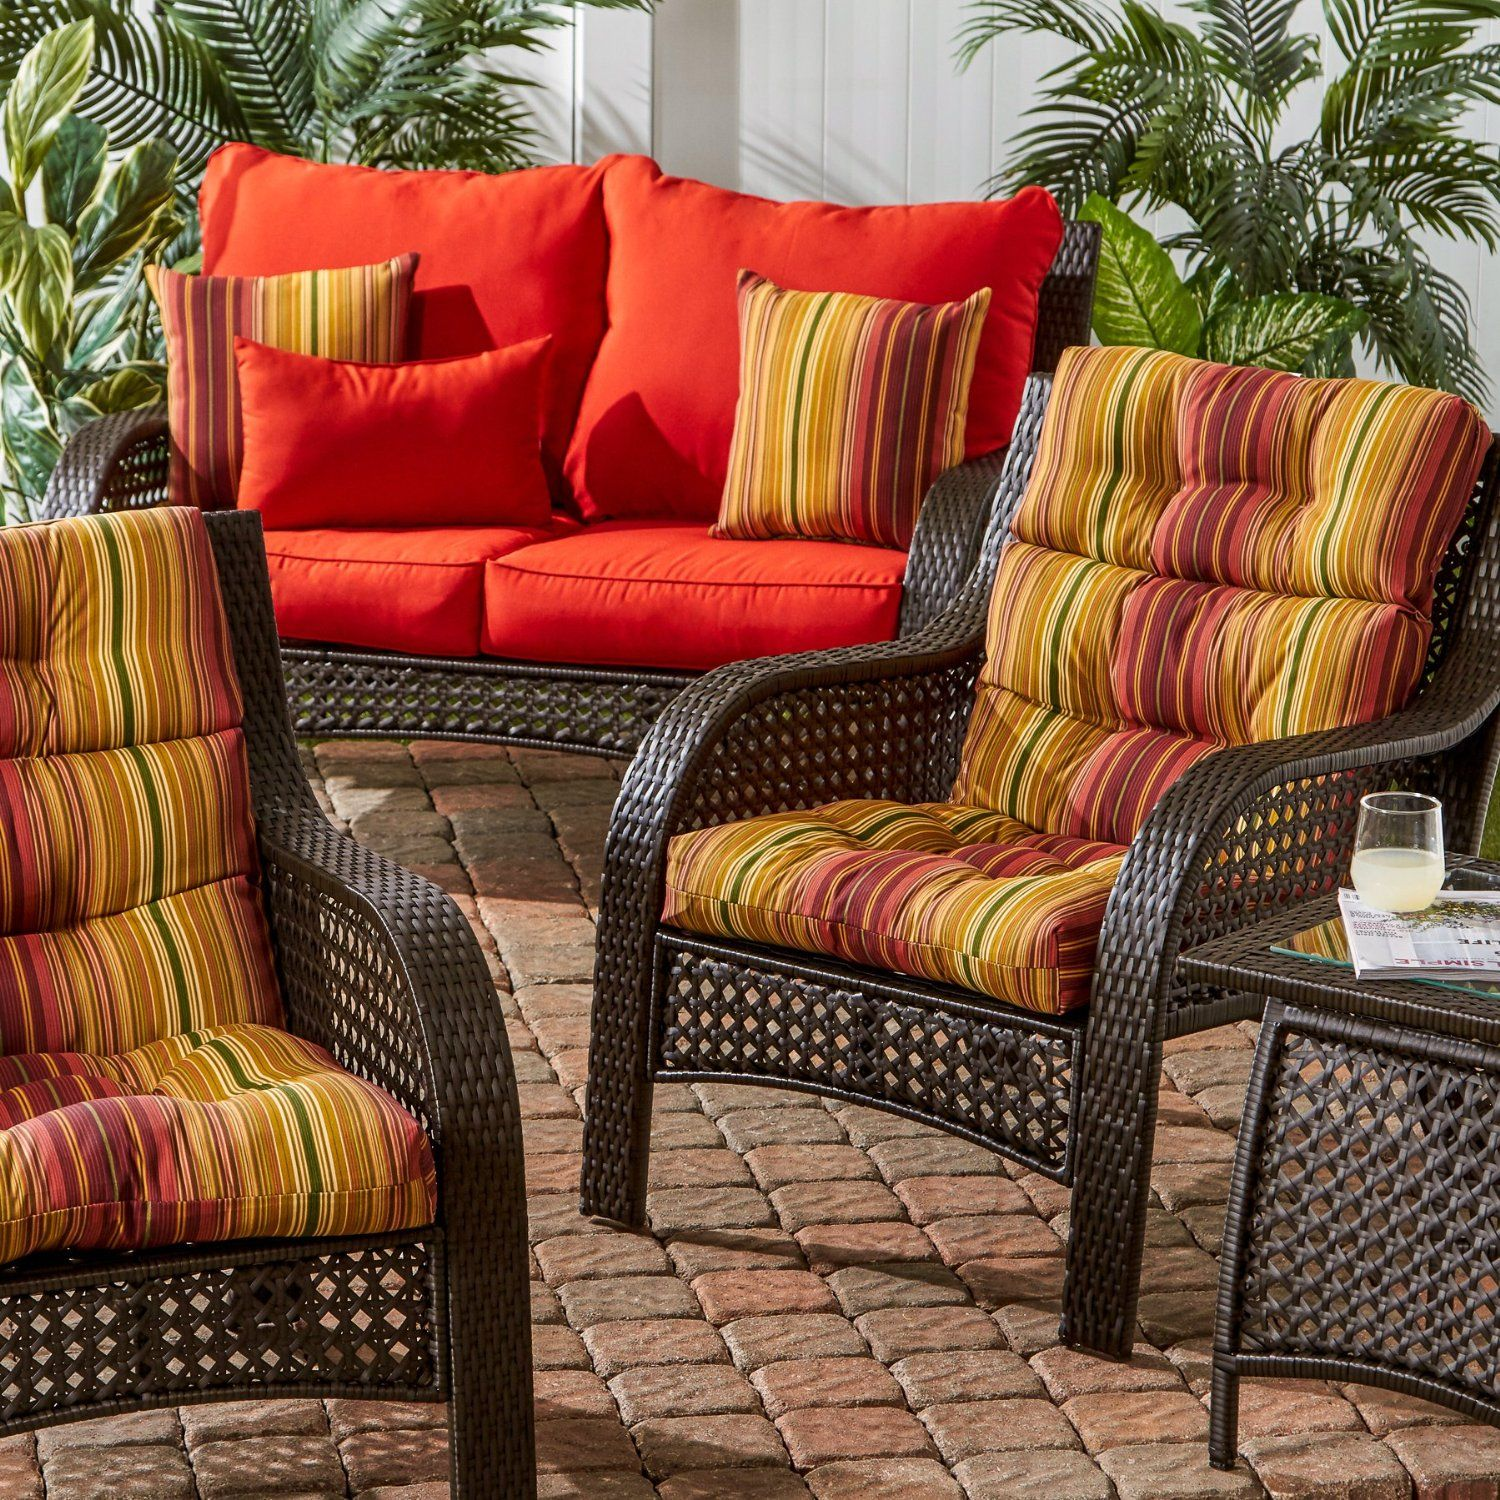 Greendale Home Fashions Indoor/Outdoor High Back Chair